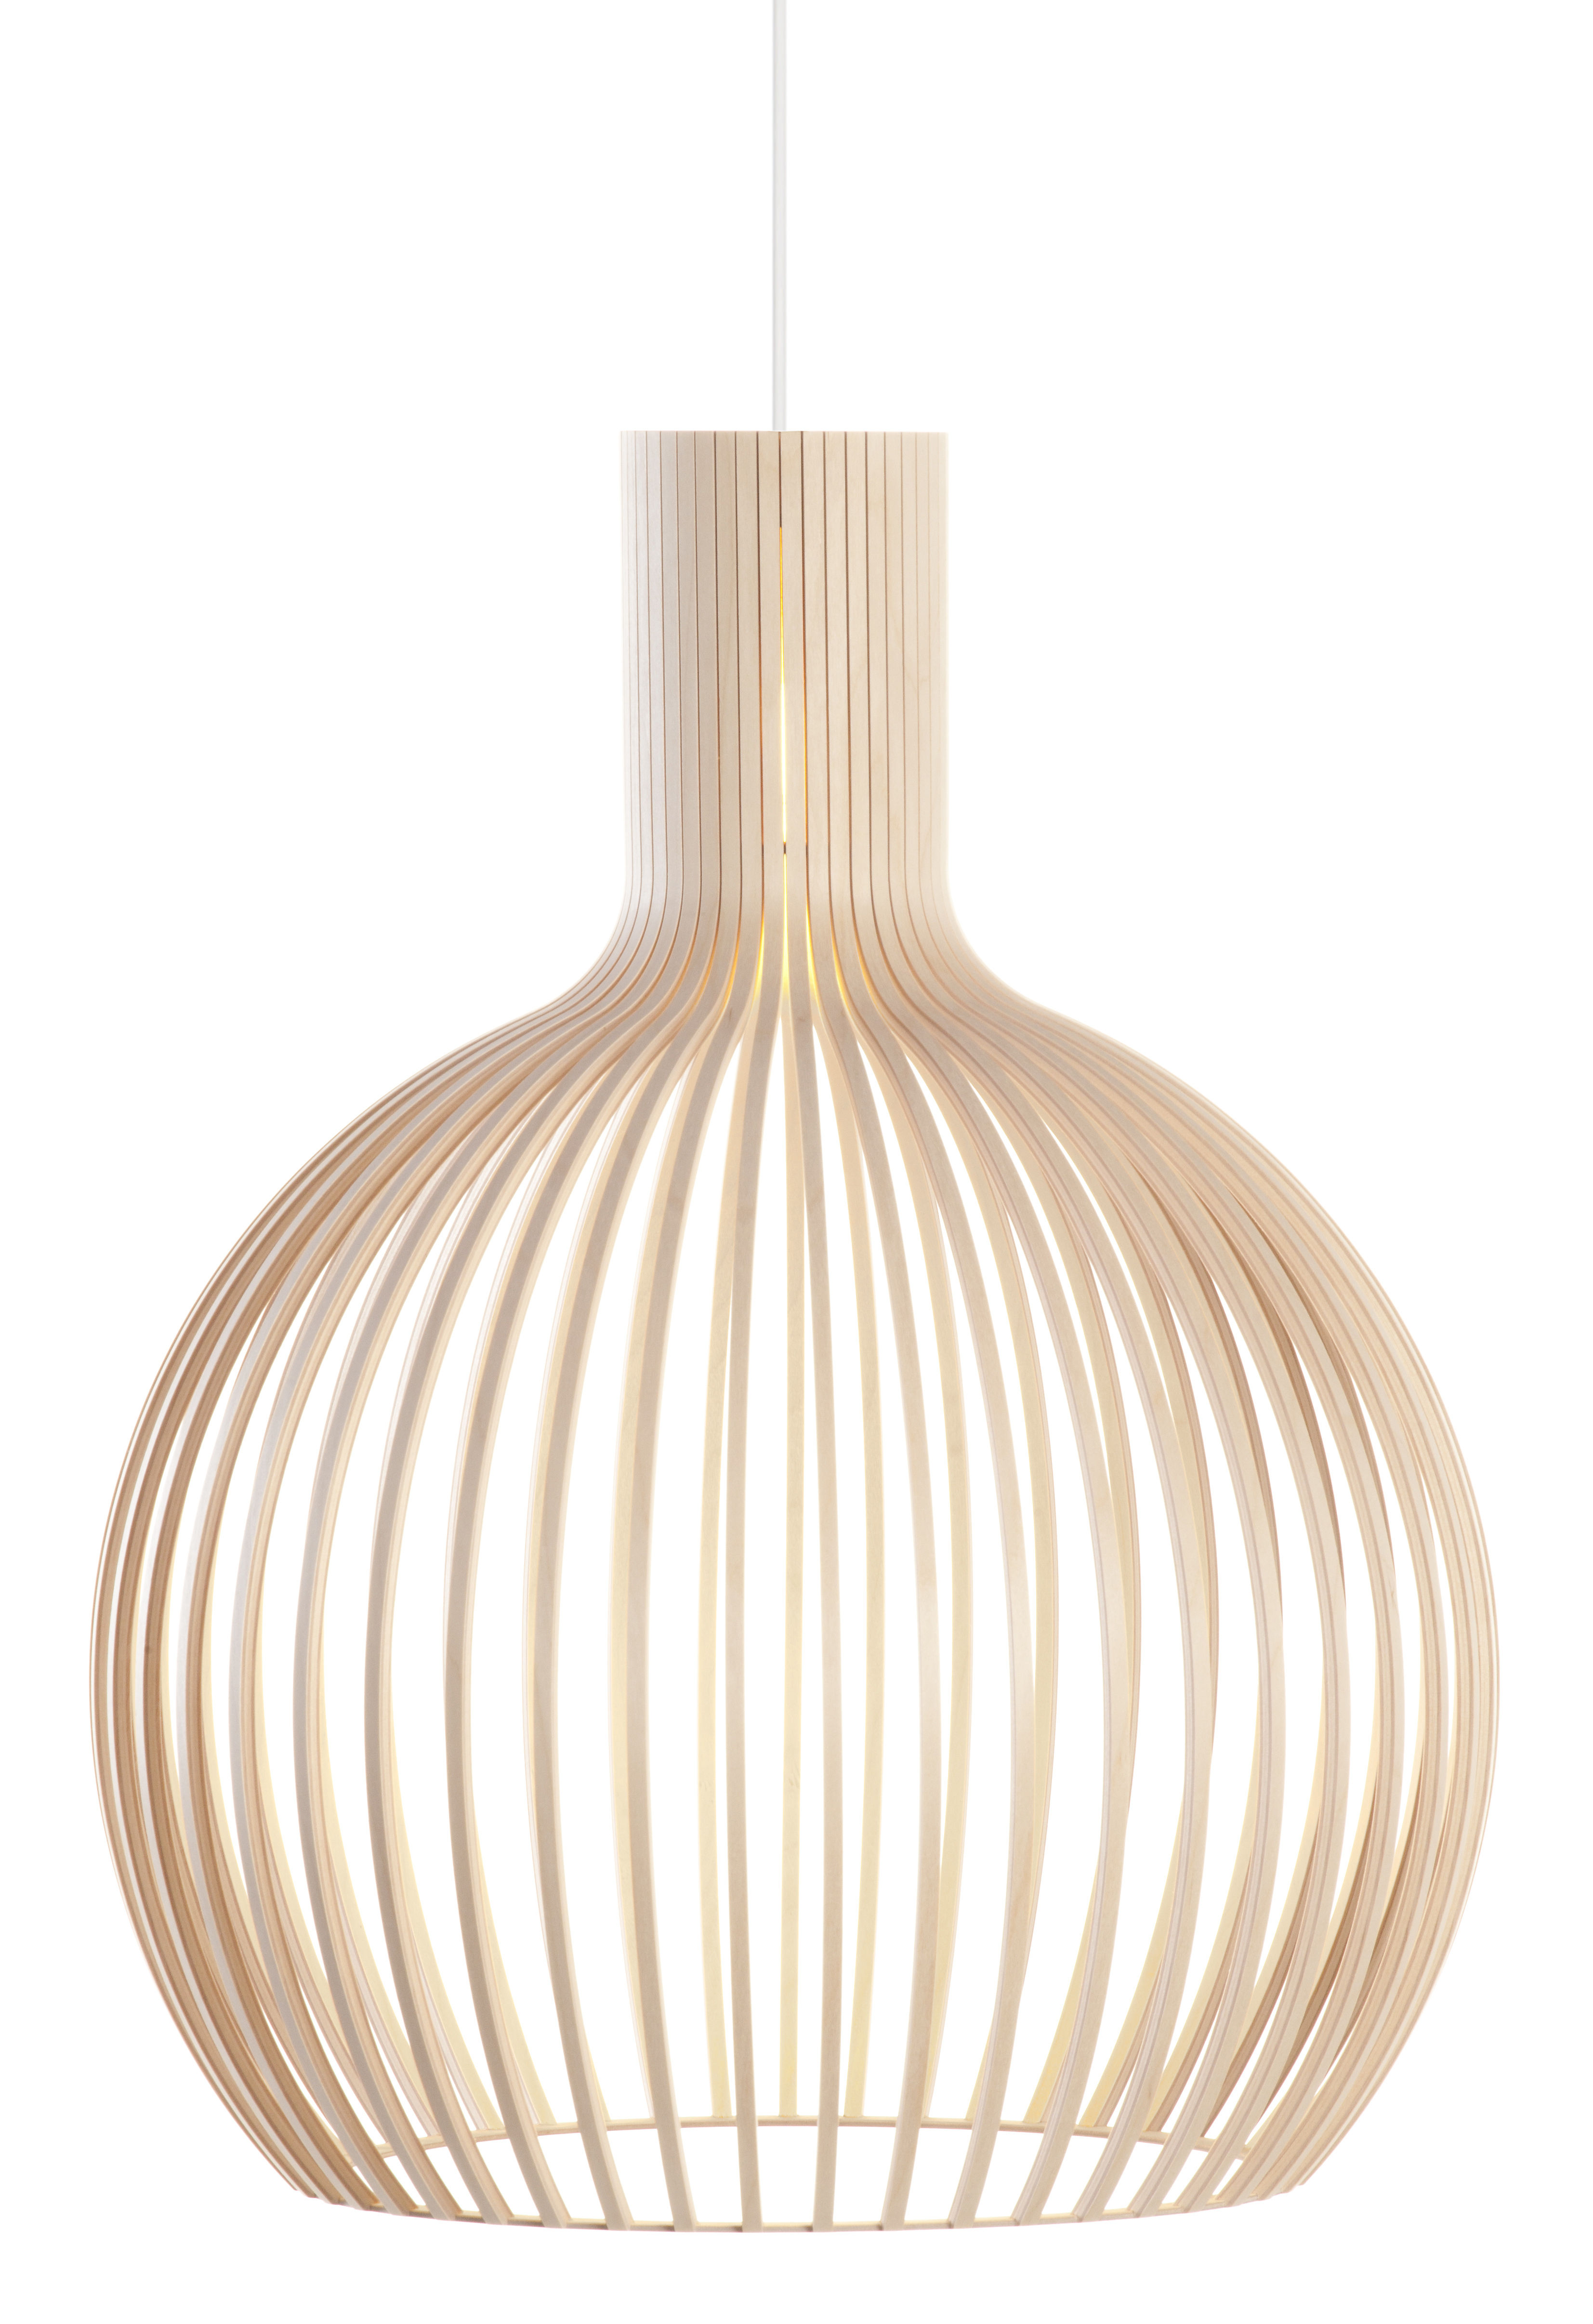 Lighting - Pendant Lighting - Octo Pendant - / Ø 54 cm by Secto Design - Natural birch / White cable - Birch slats, Textile